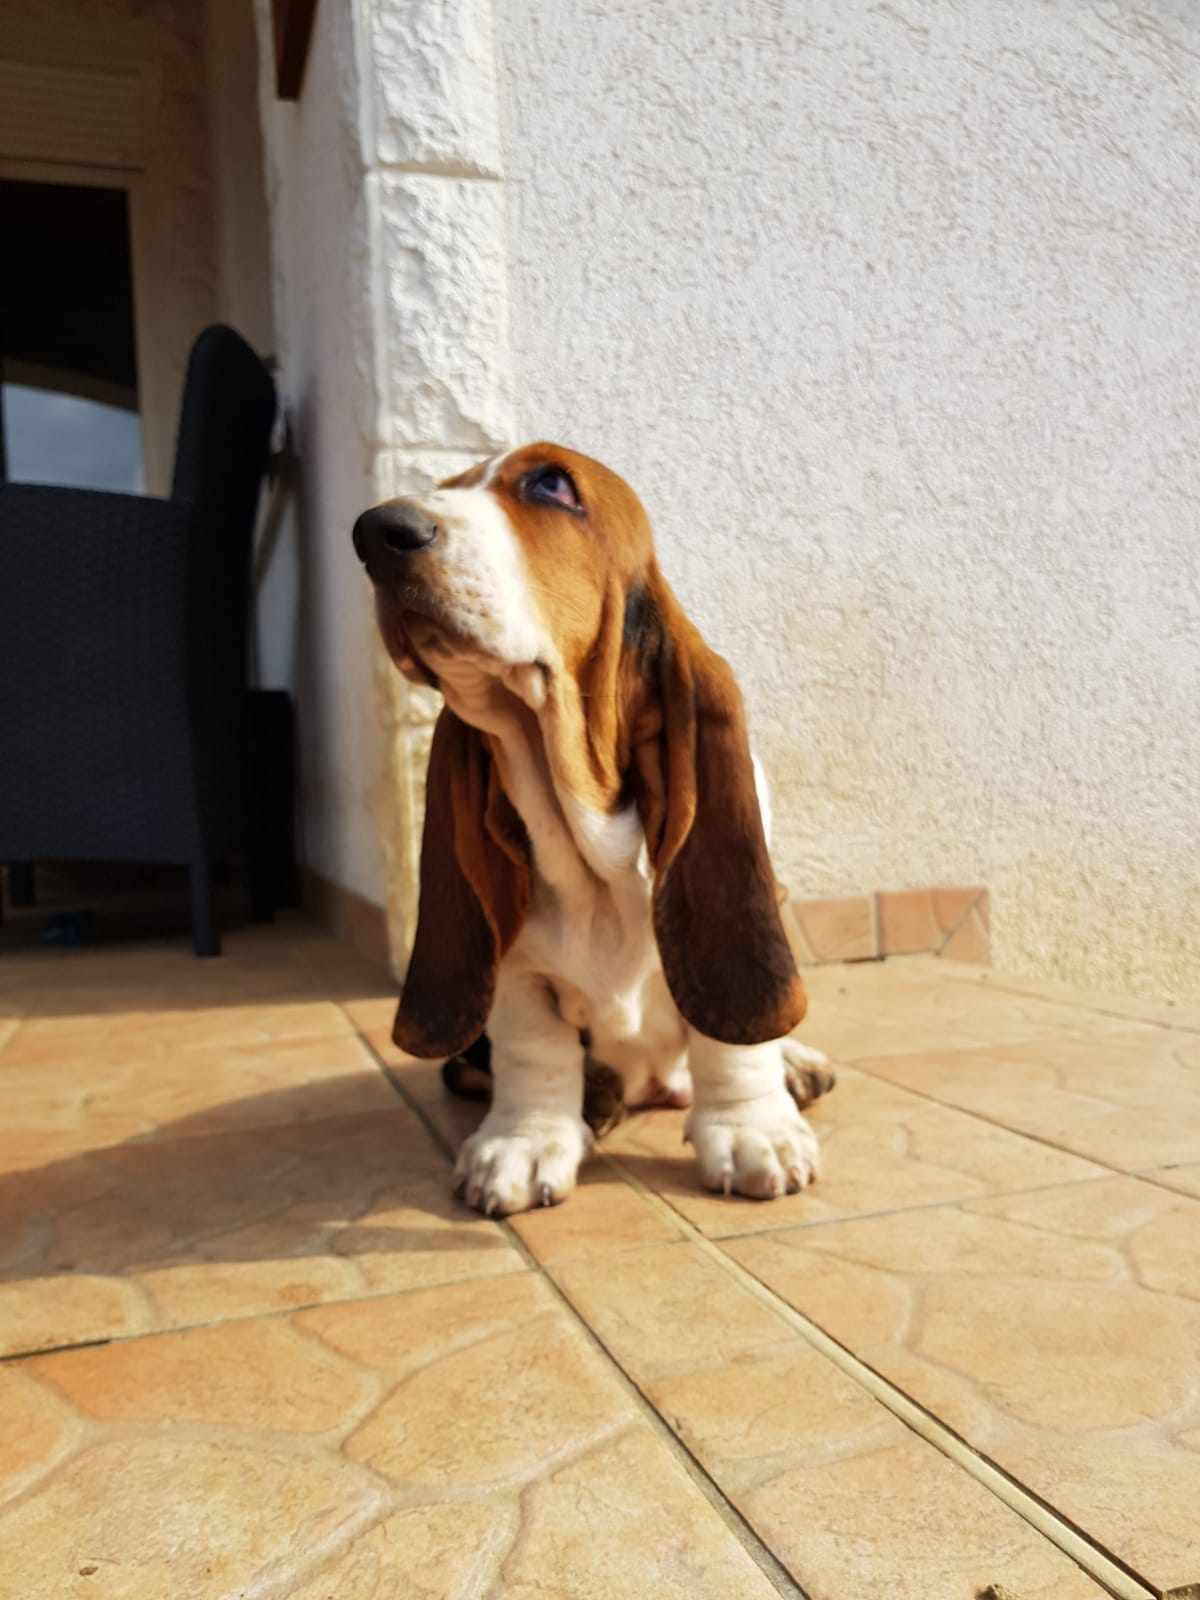 WhatsApp Image 2019 08 18 at 11.31.09 1 SaSa ReSi Bassethoundkennel